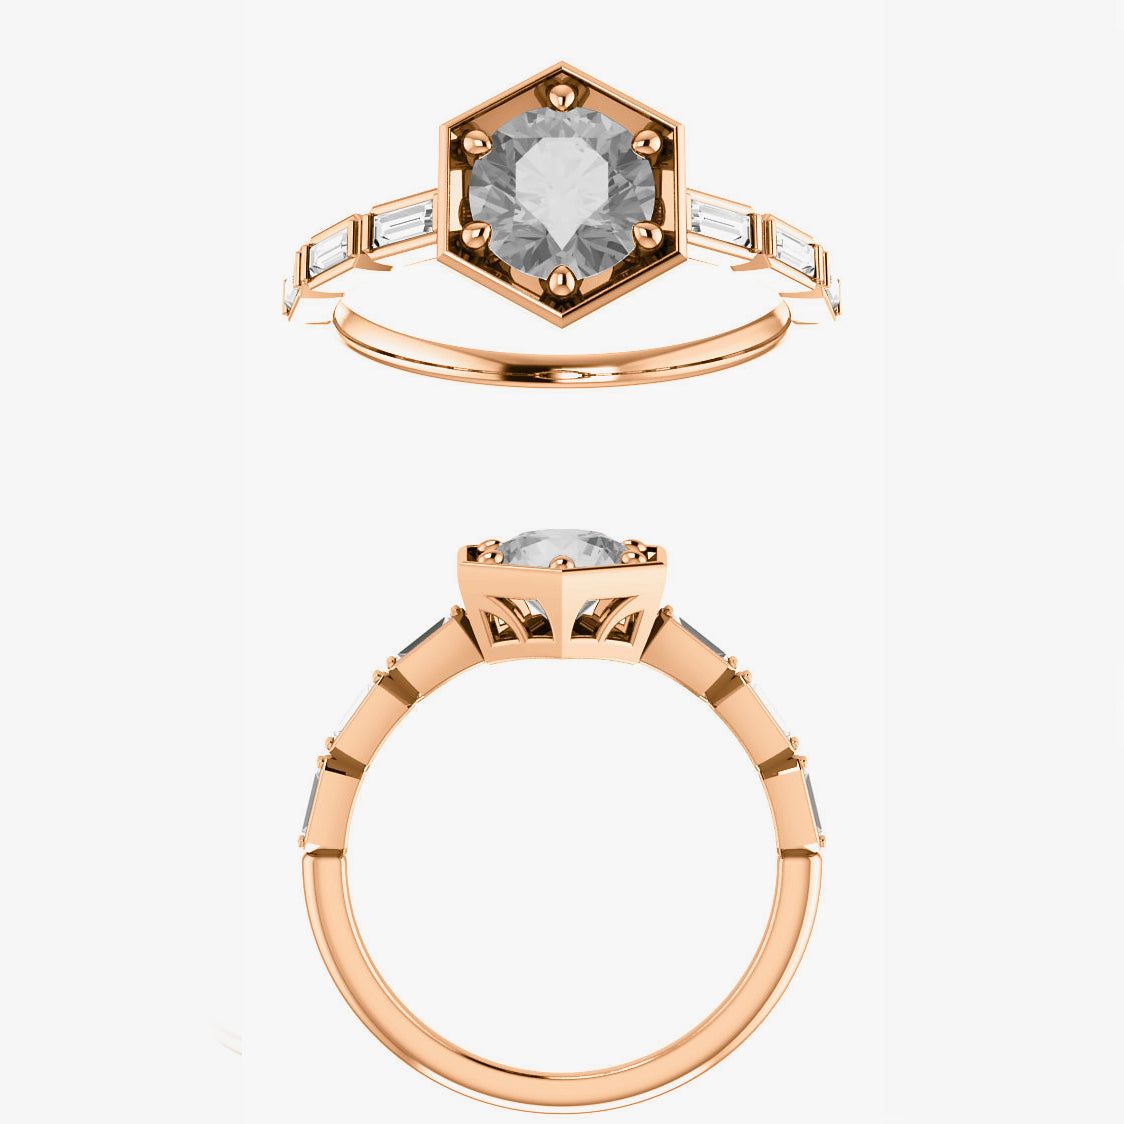 Lennen Setting - Celestial Diamonds ® by Midwinter Co.